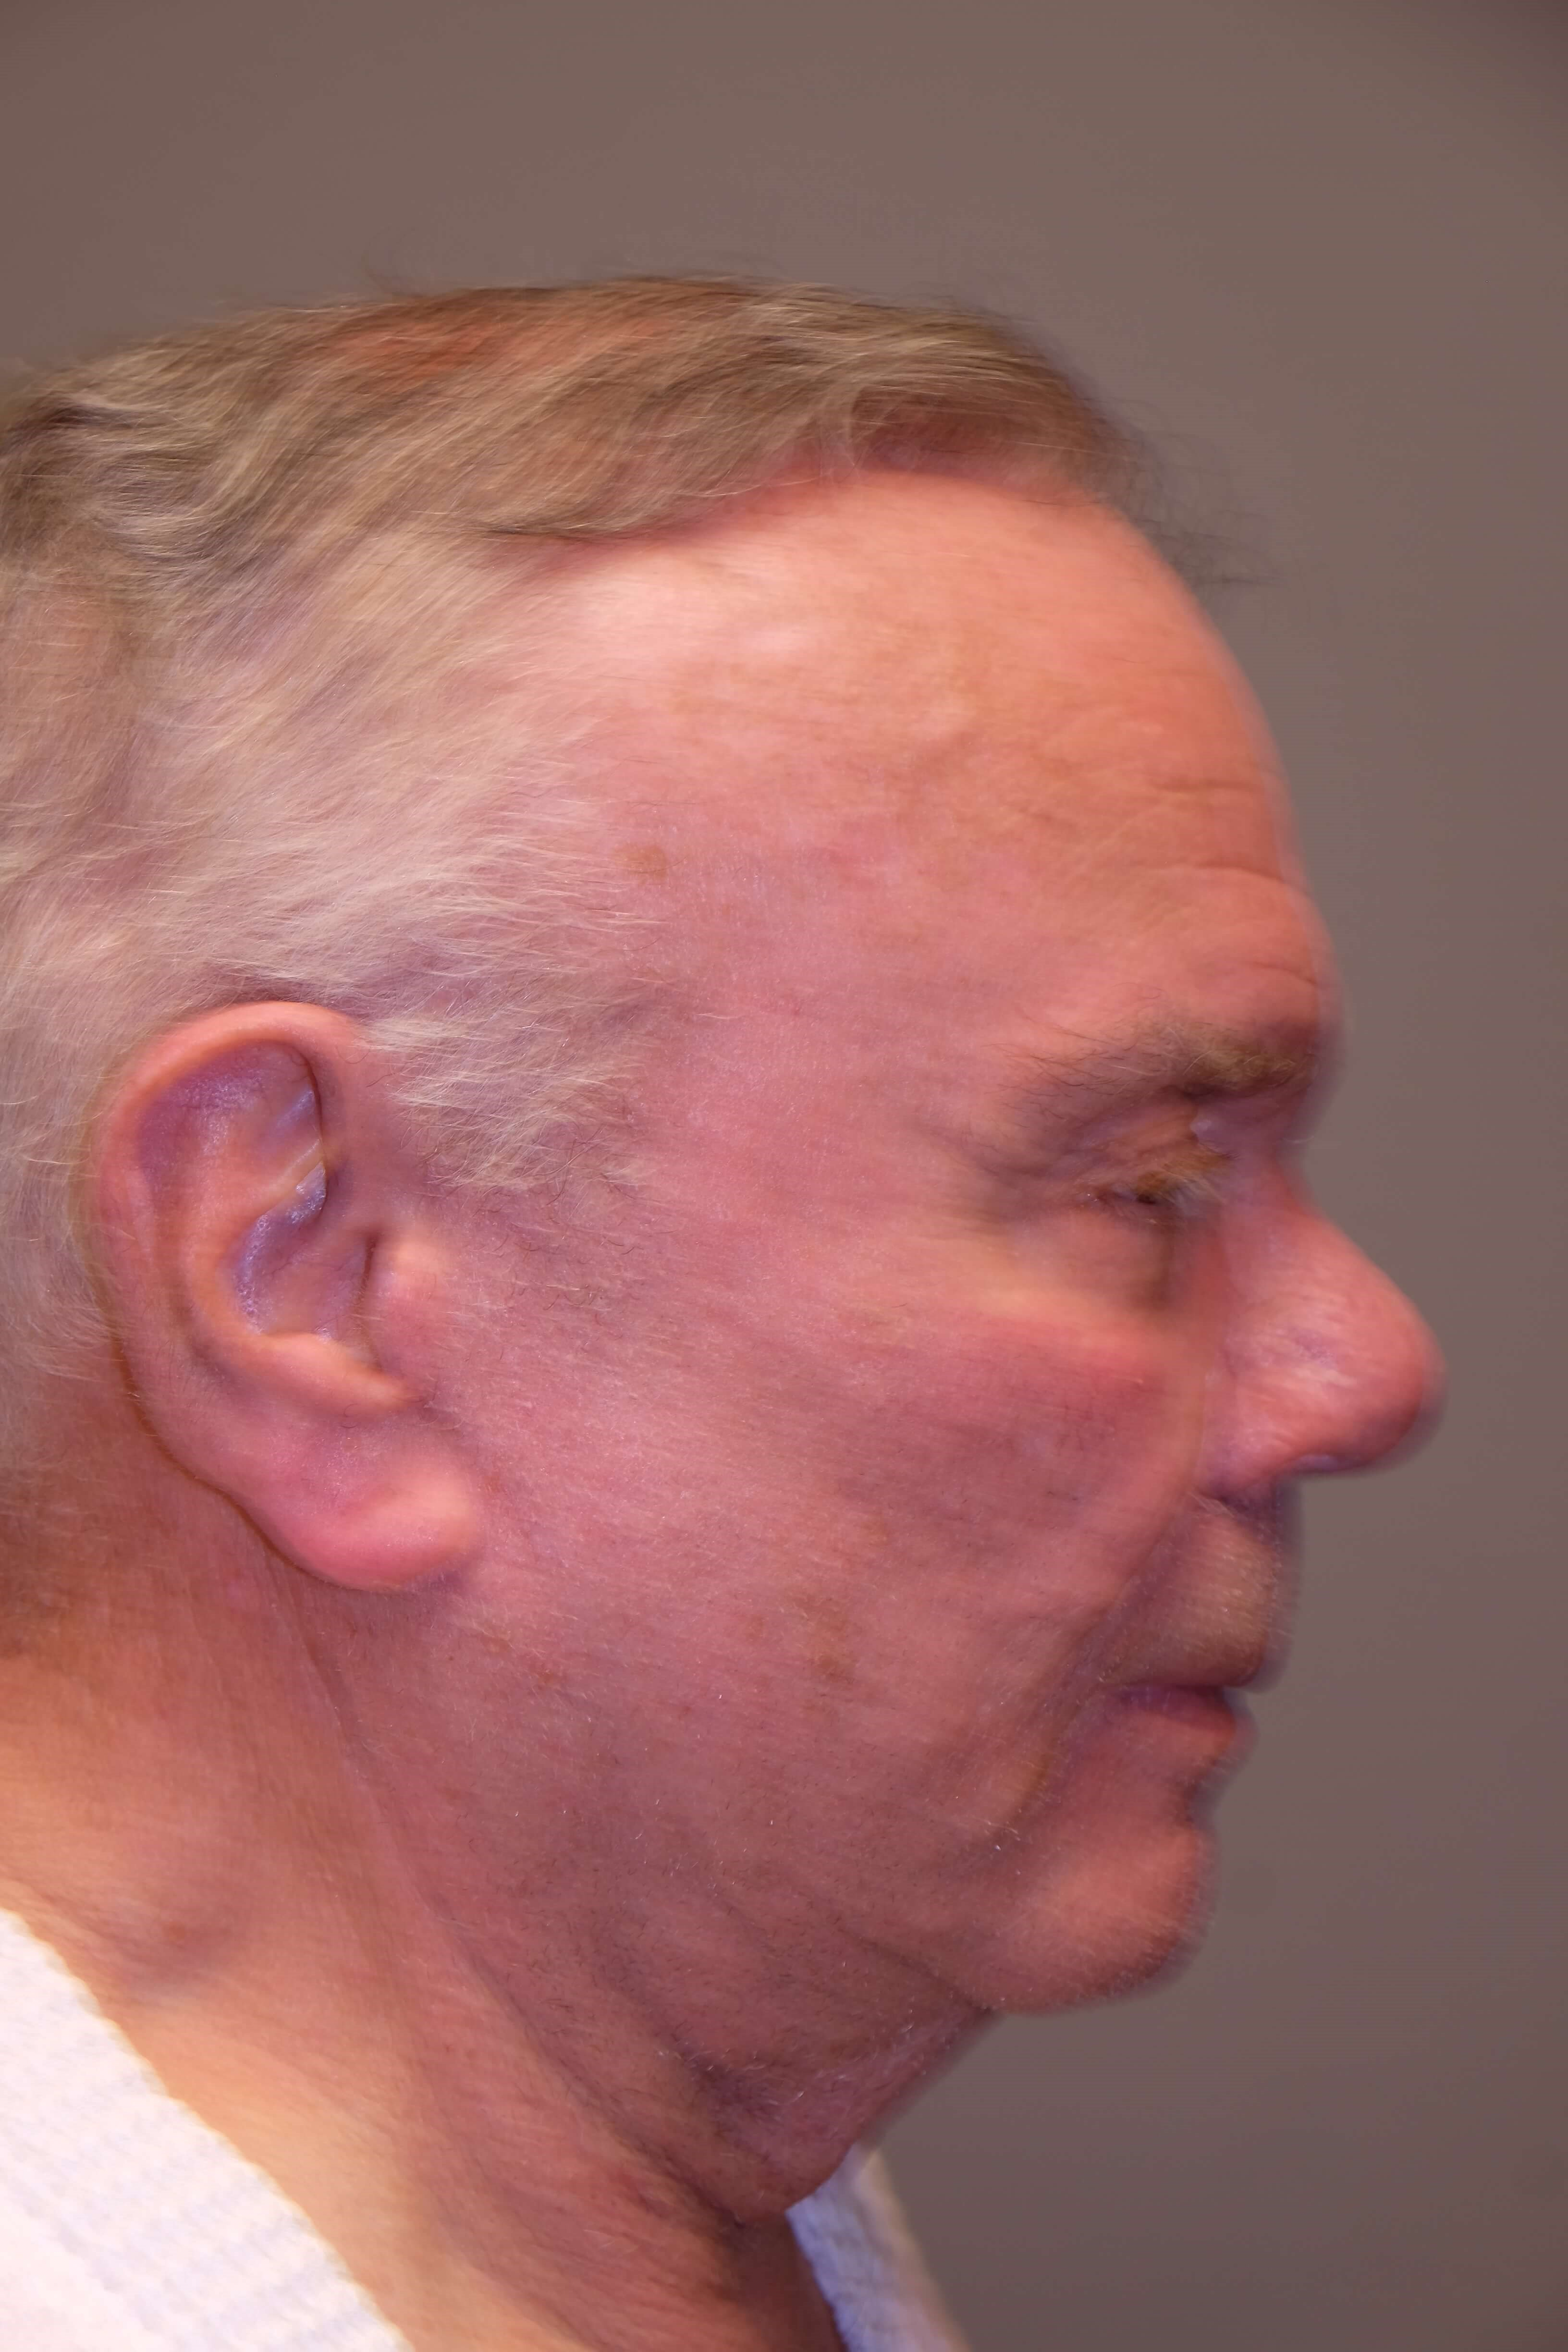 Direct Male Necklift Before